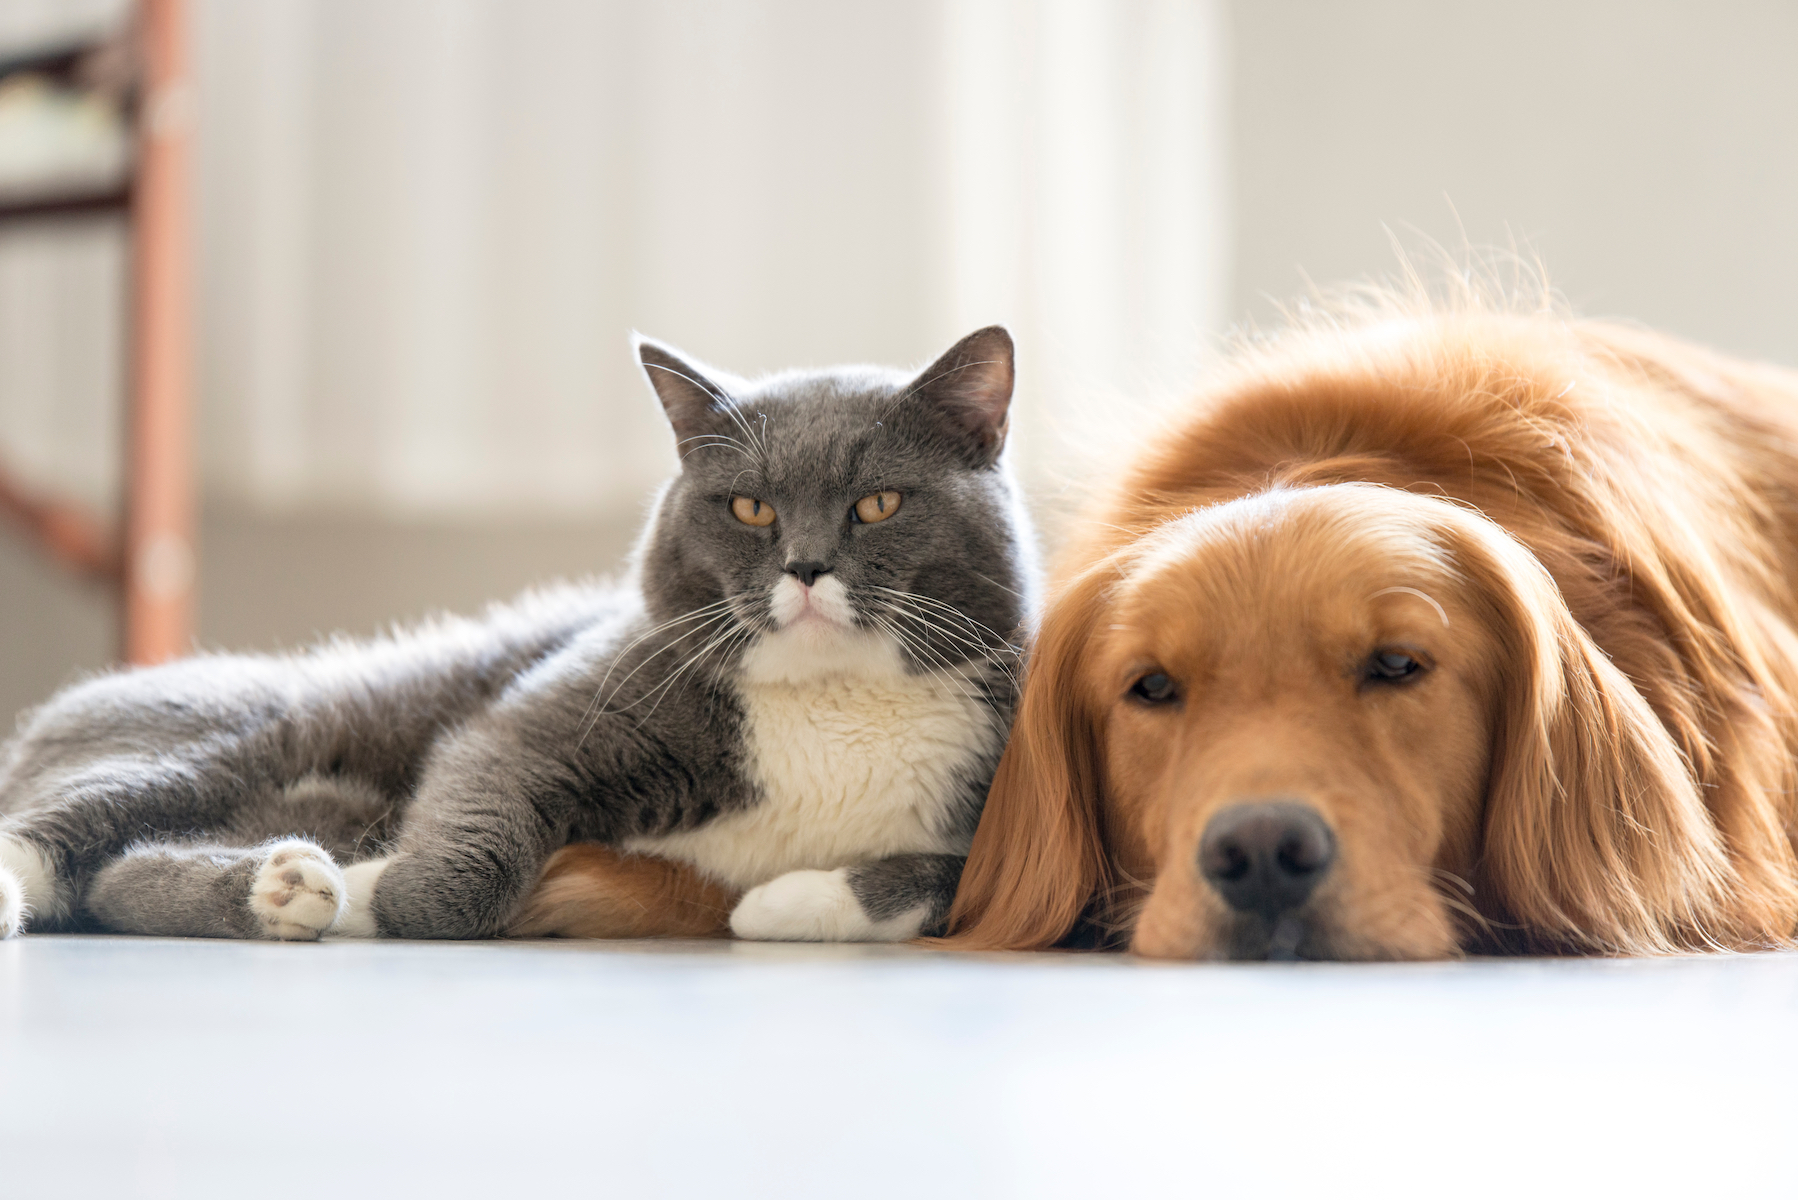 Canva - Dogs and cats snuggle together